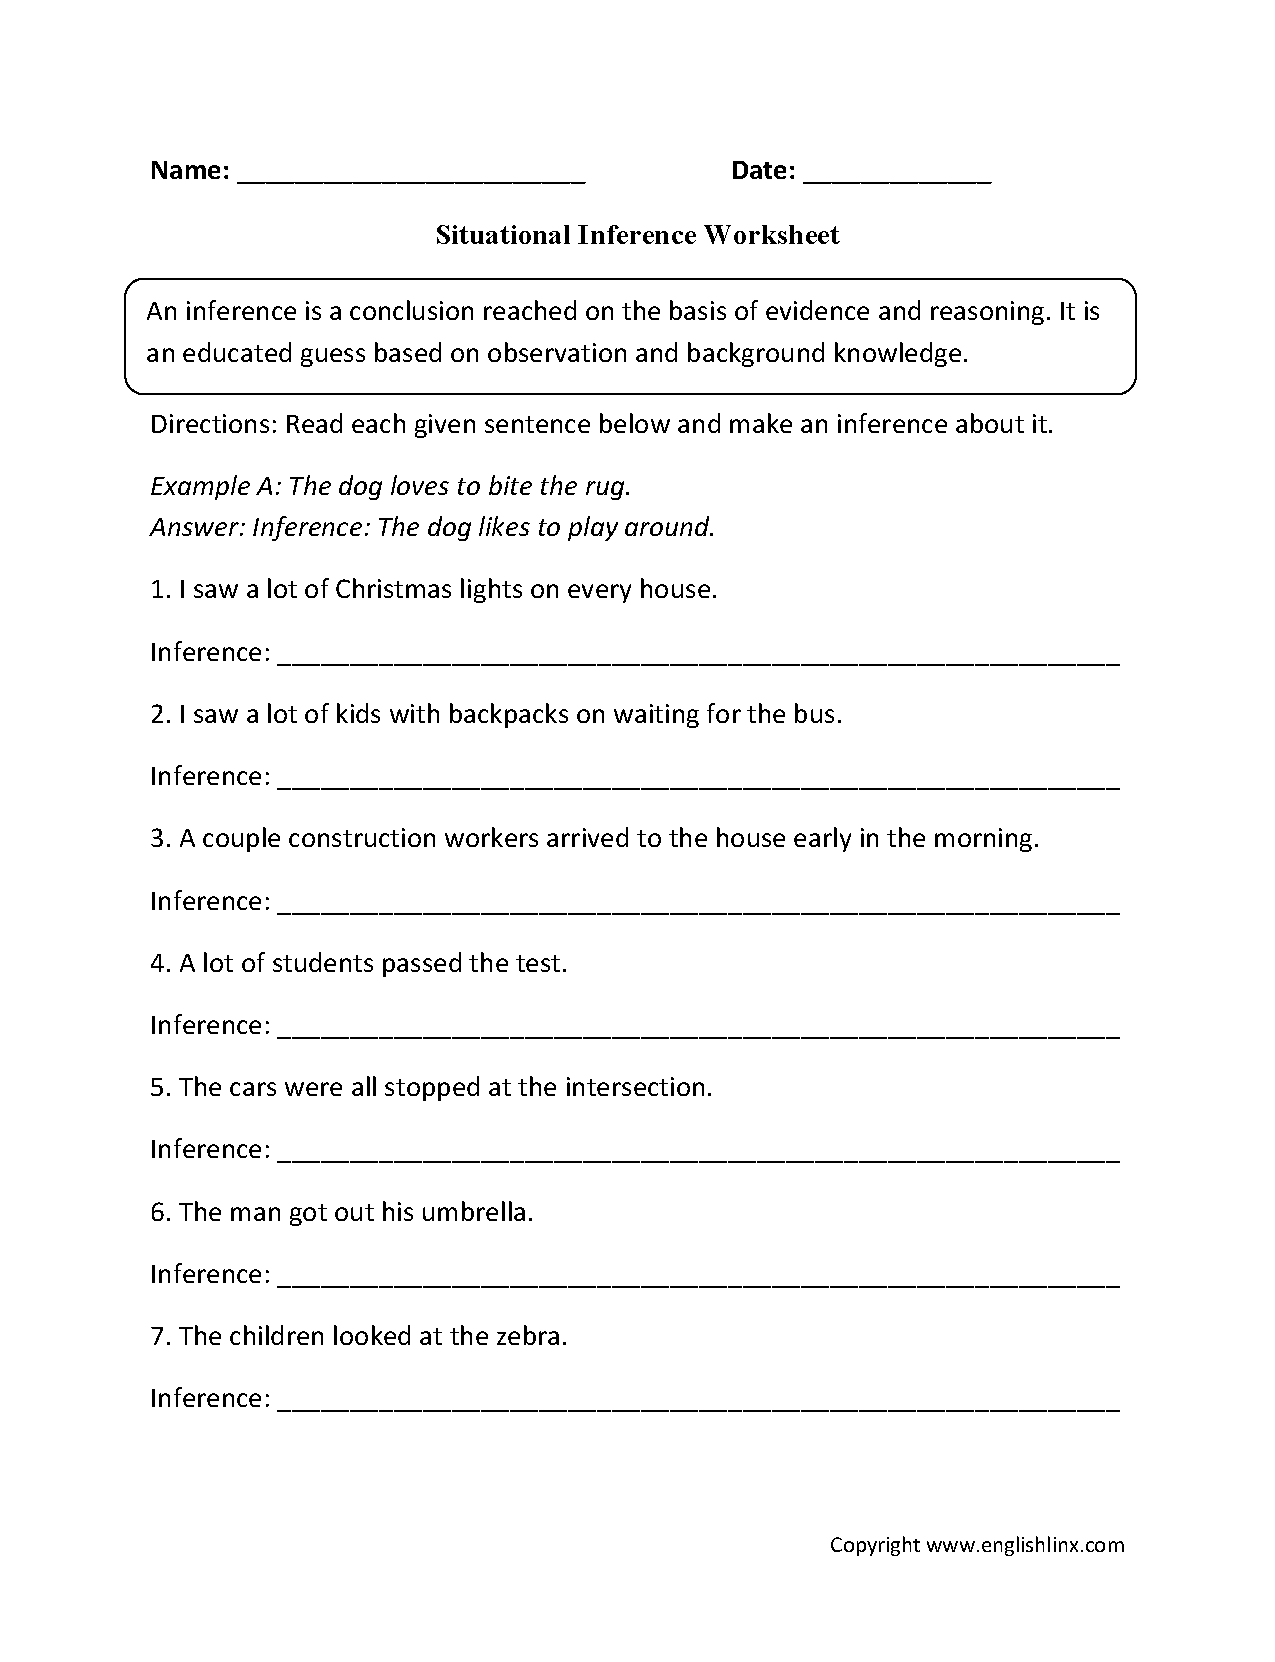 Worksheets 3rd Grade Inferencing Worksheets reading worksheets inference worksheets